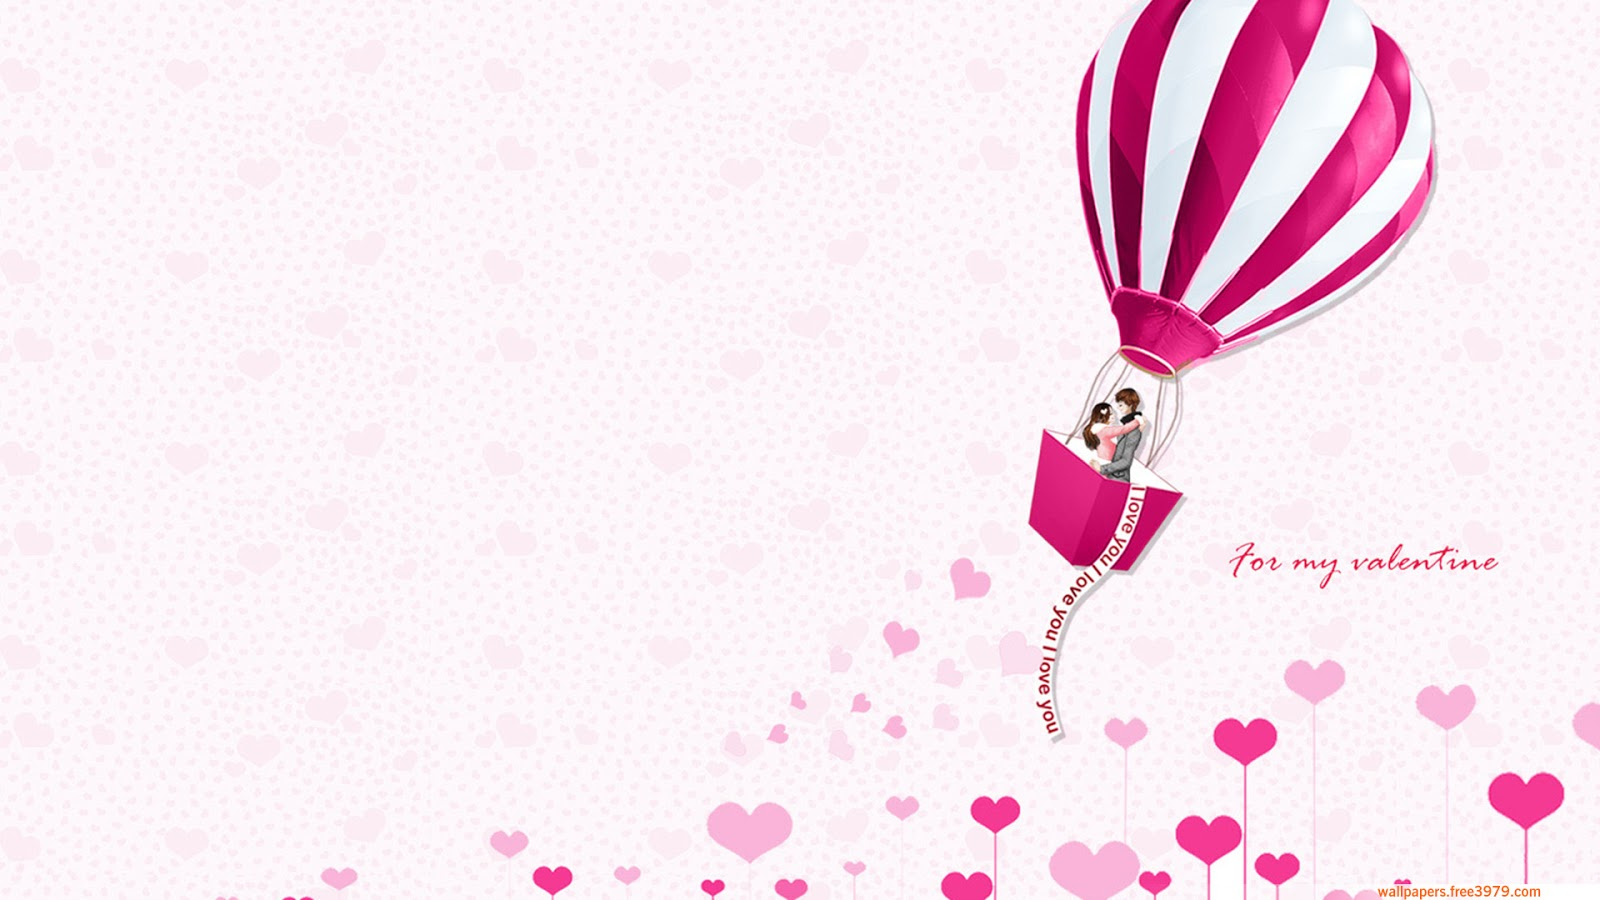 Cute Valentines Day Wallpaper Sweet Wallpapers for Valentine`s Day 1600x900